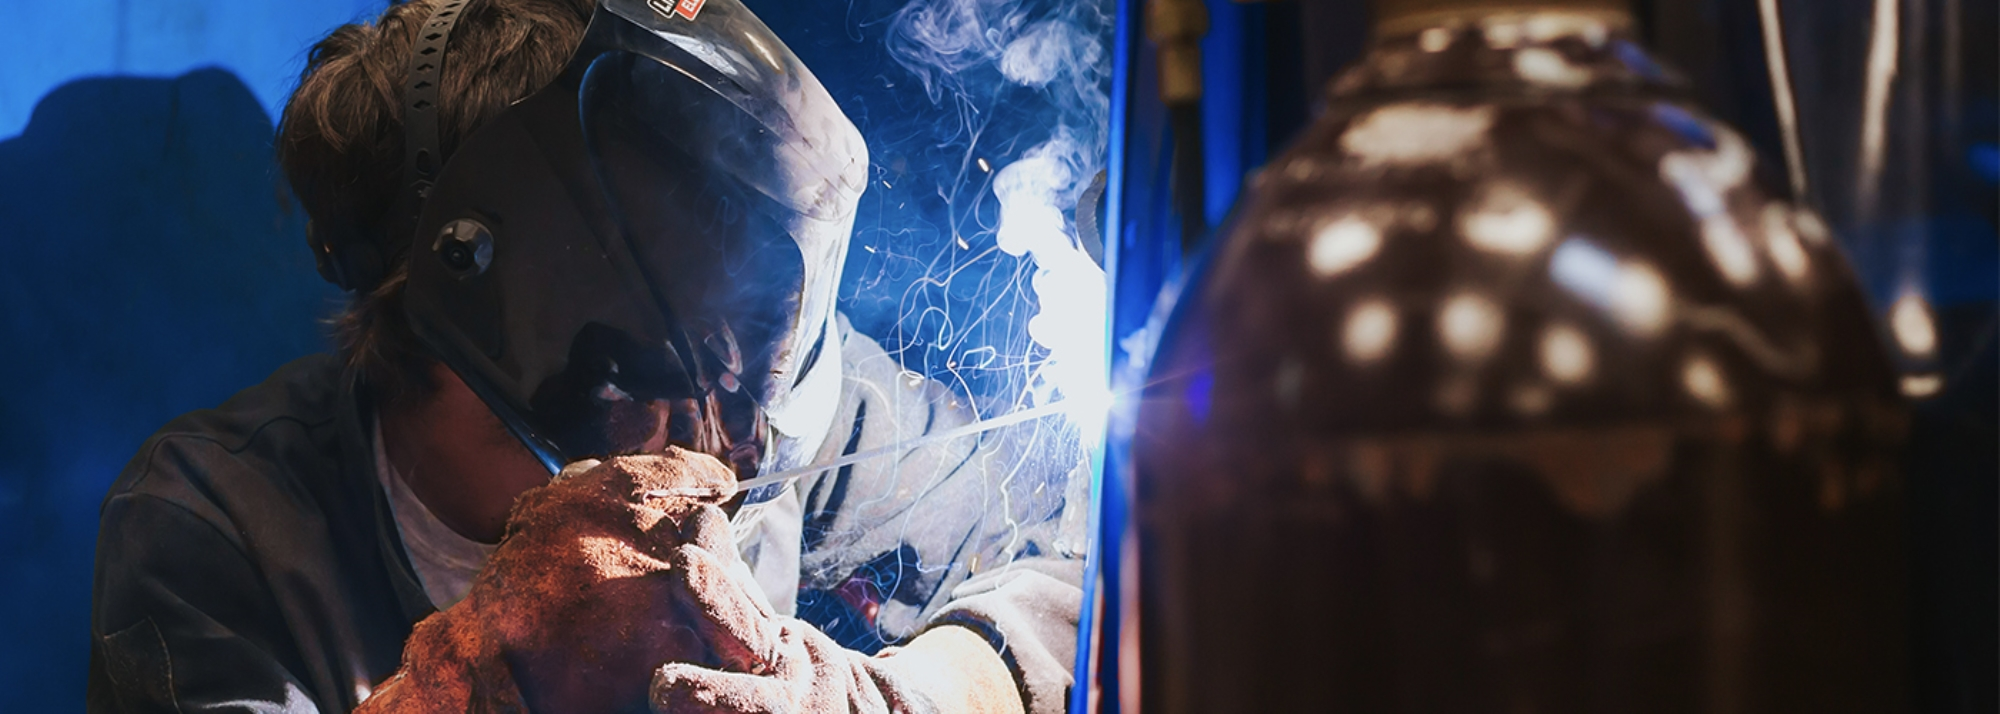 Close up photo of Someone Welding